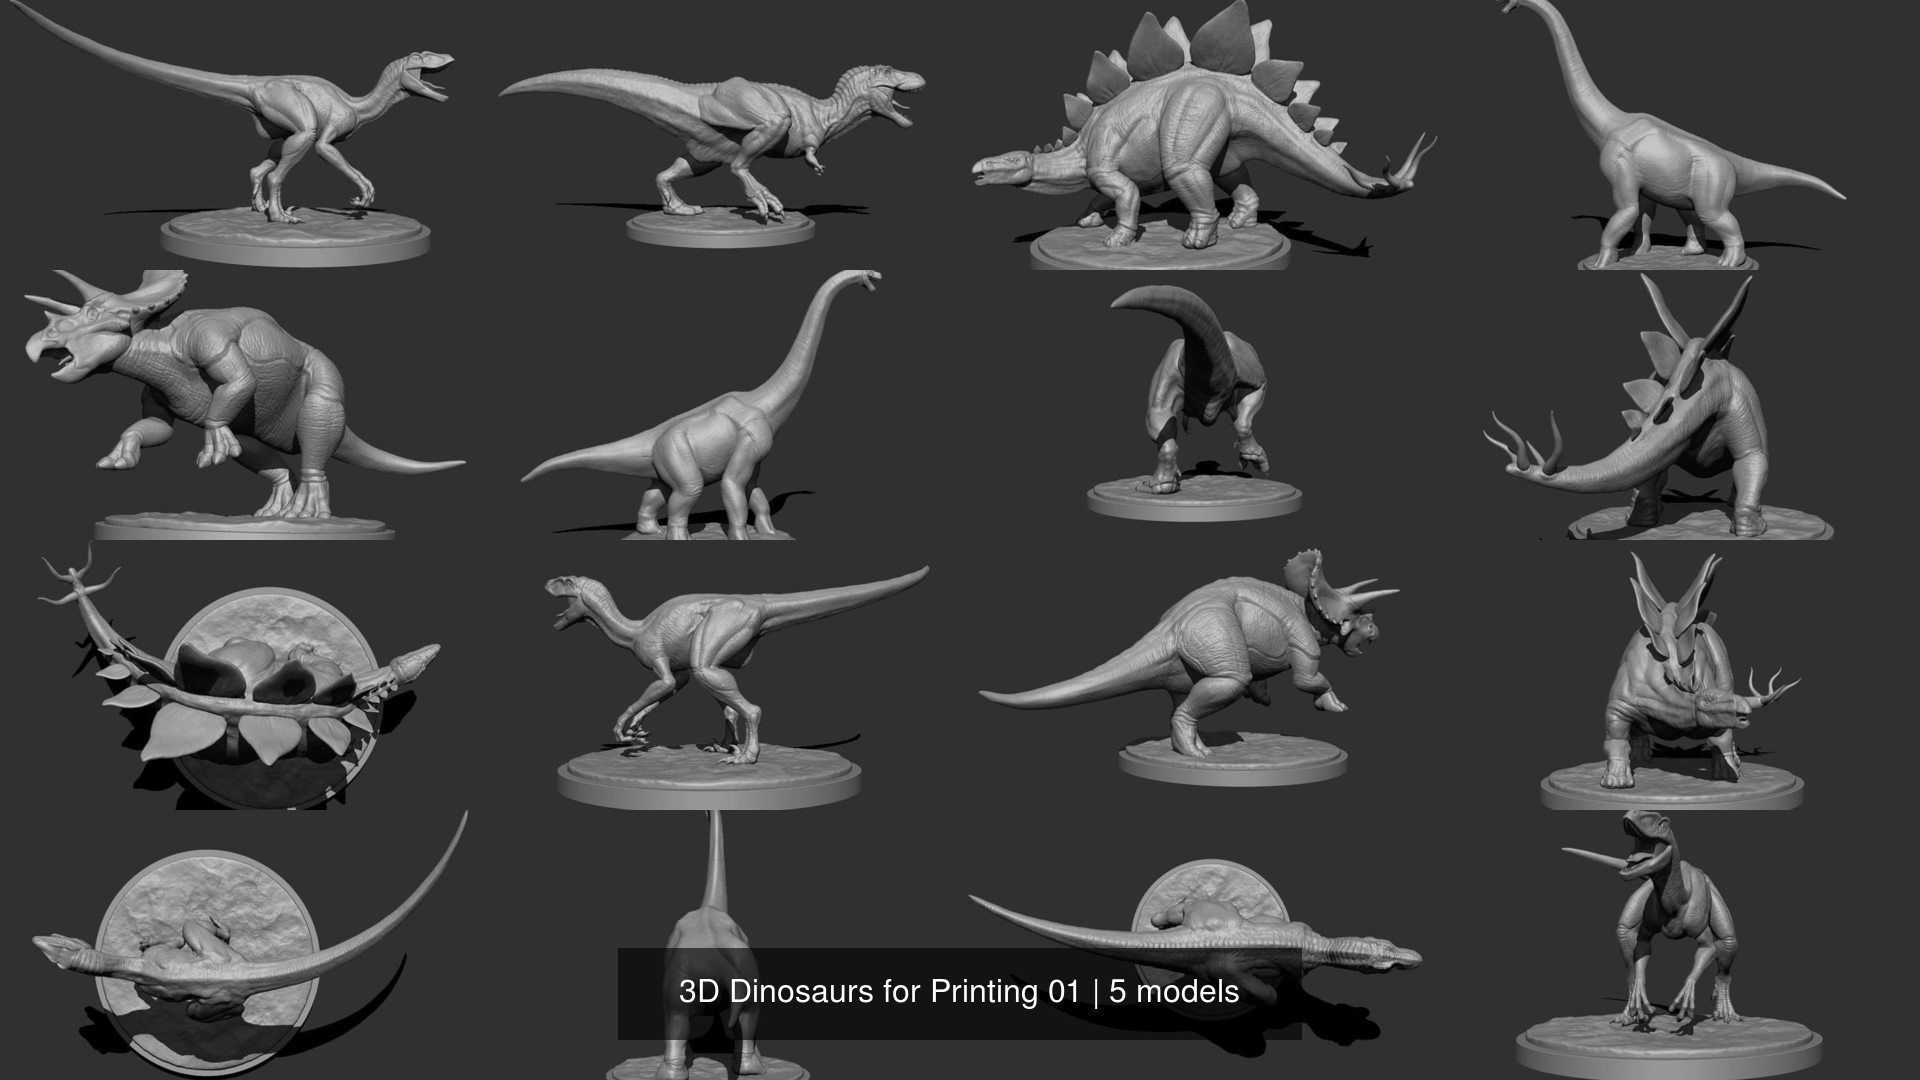 3D Dinosaurs for Printing 01